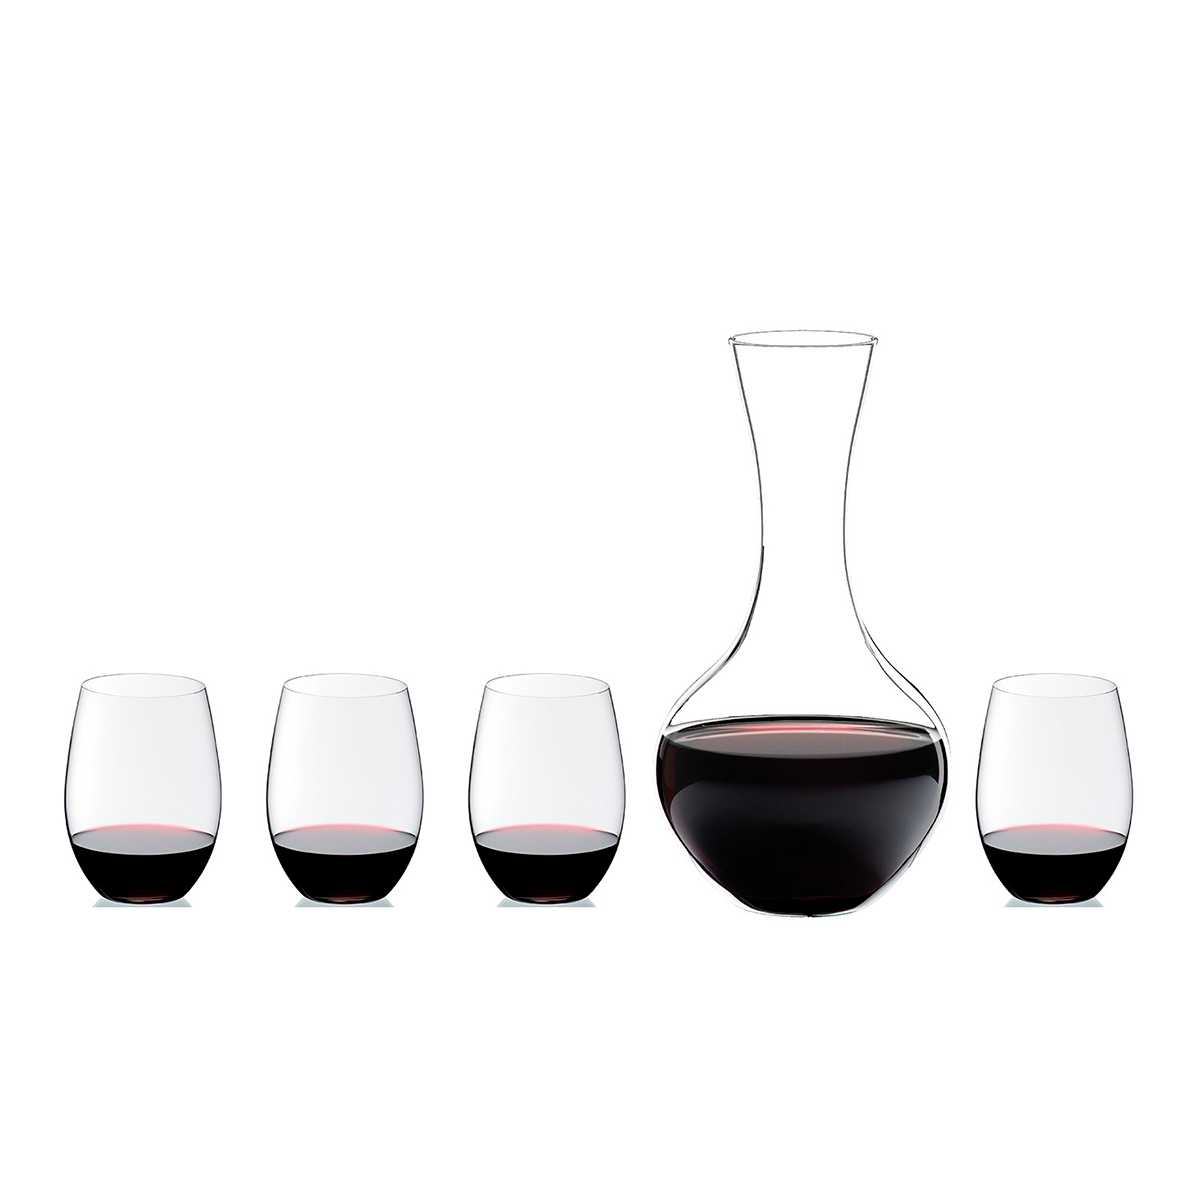 Онлайн каталог PROMENU: Набор для вина O RIEDEL _4 бокала для Cabernet O + Decanter, 5 шт  5414/30